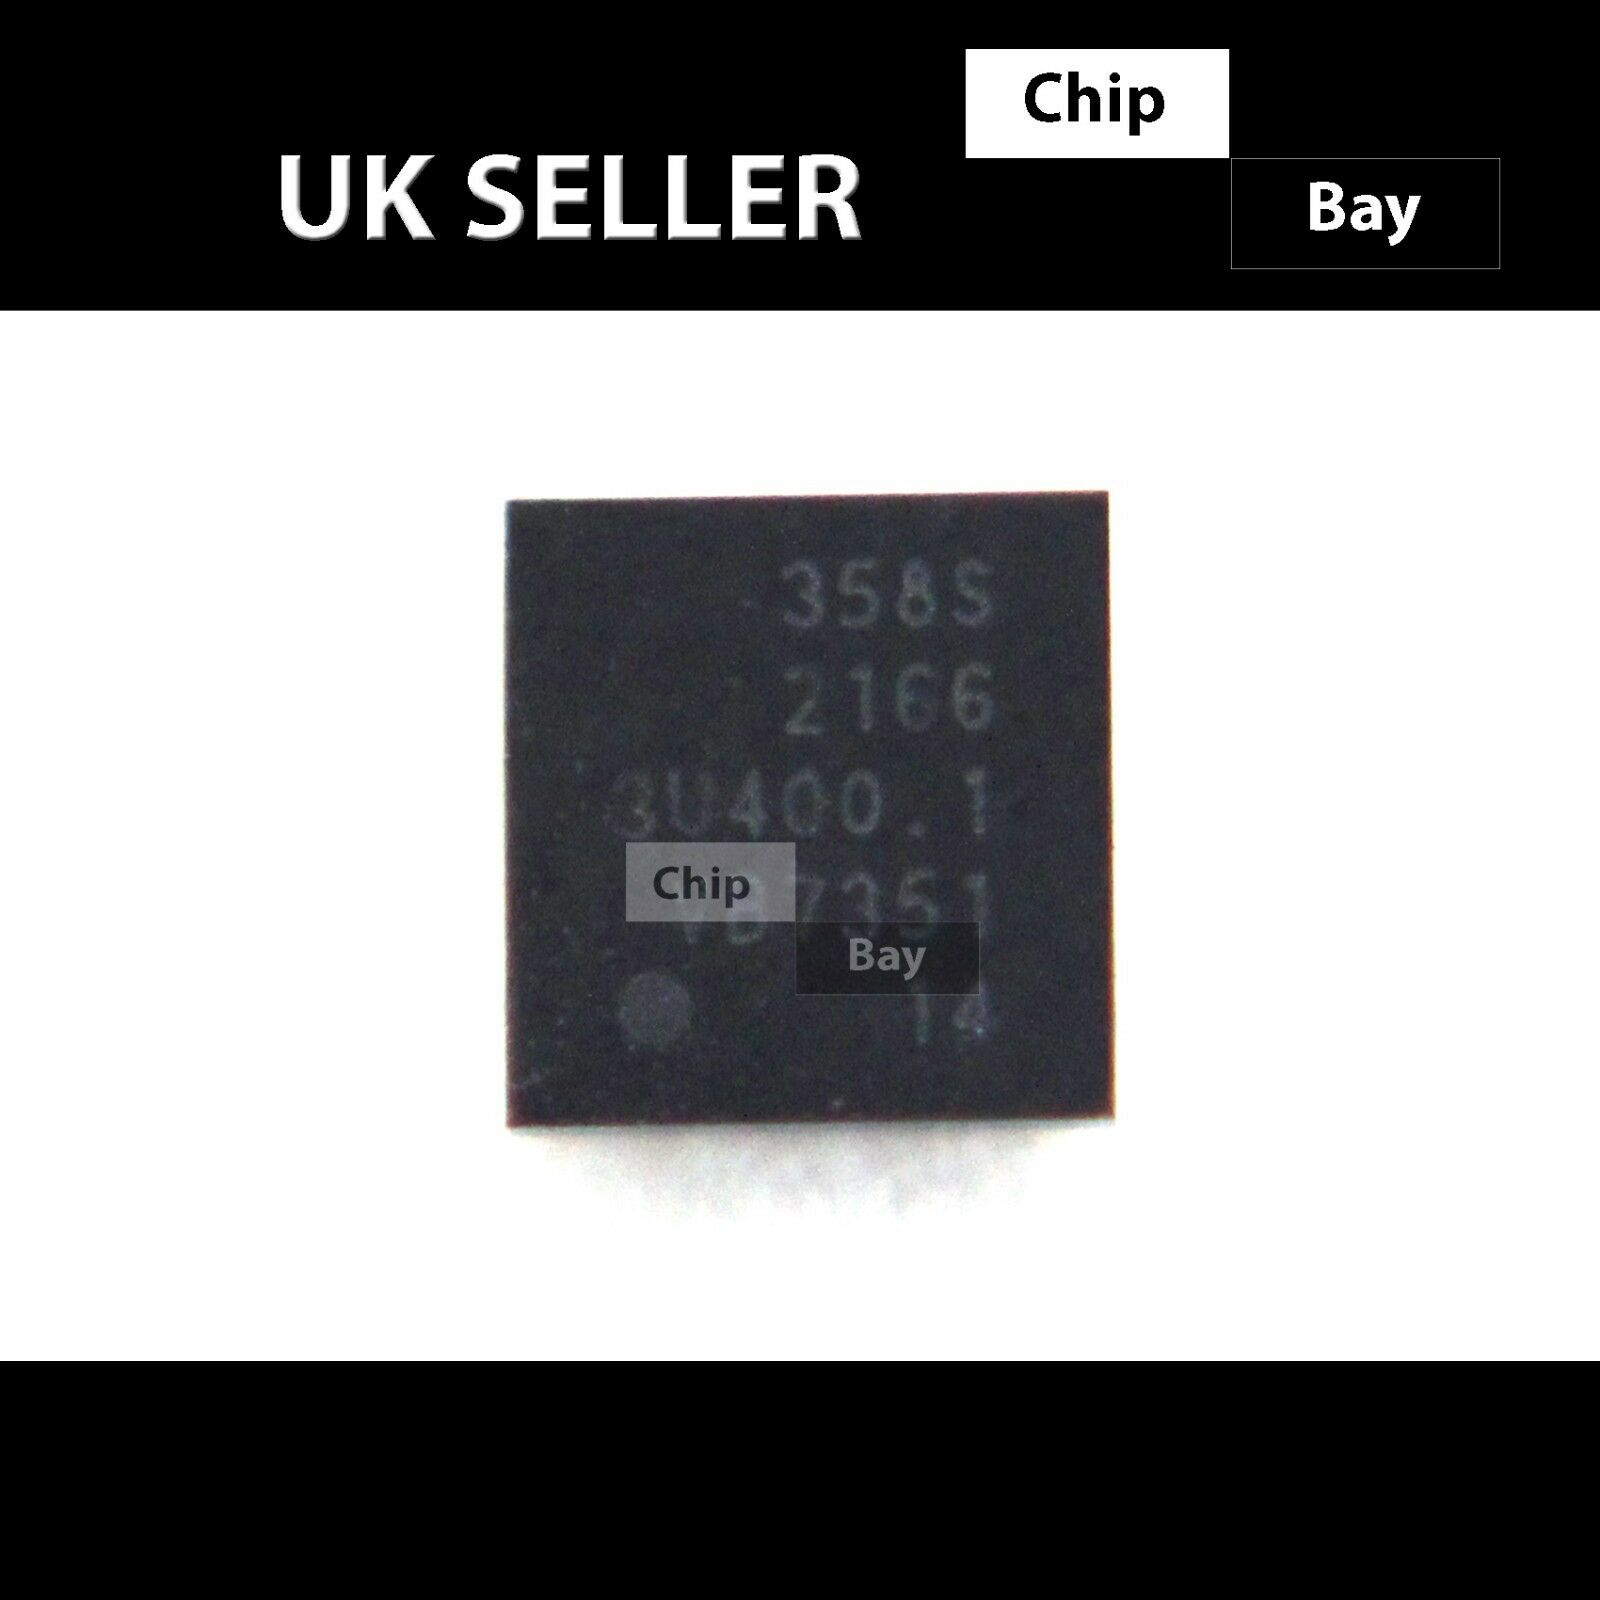 Samsung Galaxy Mega Tab 3 T210 358s 2166 Charging Charger Ic Chip 5x 74hc595 8bit Shift Register Digital Integrated Circuit Ebay 1 Of 2only 4 Available